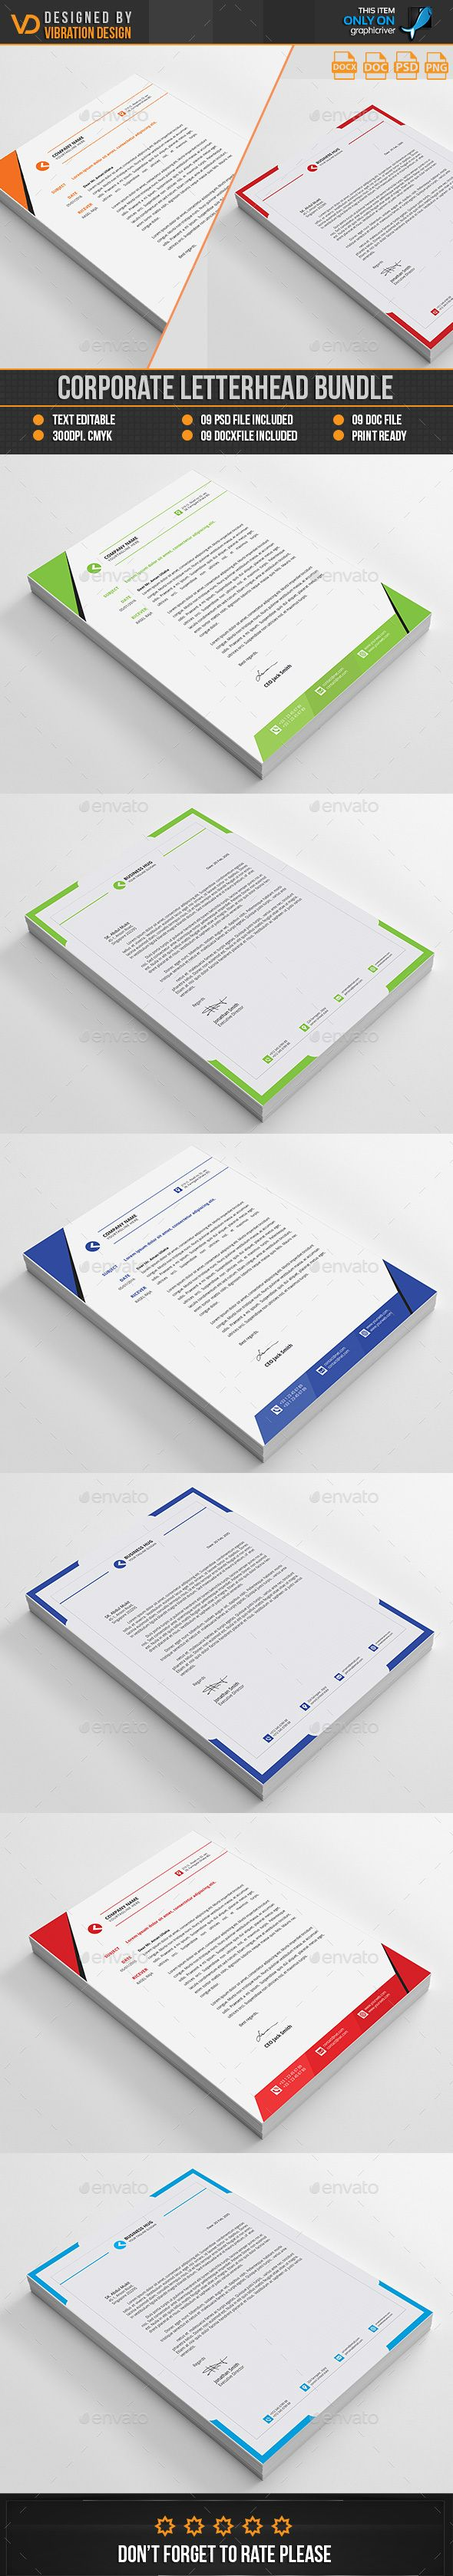 80 best letterheads print template images on pinterest print corporate letterhead bundle by kawsarnshimo spiritdancerdesigns Choice Image